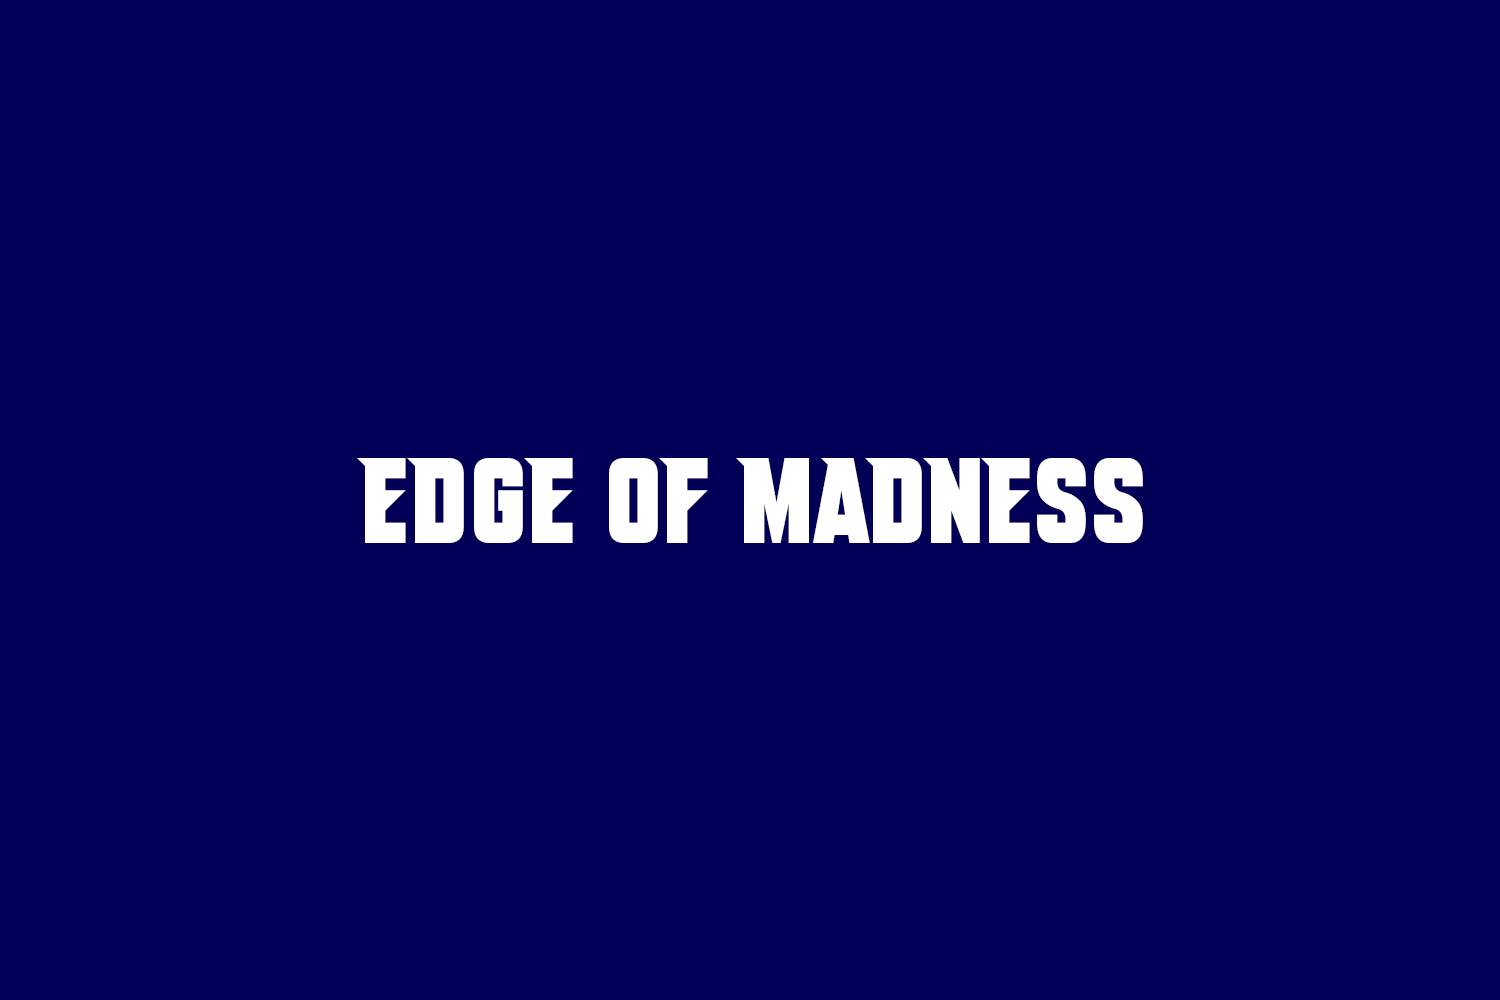 Edge Of Madness Free Font